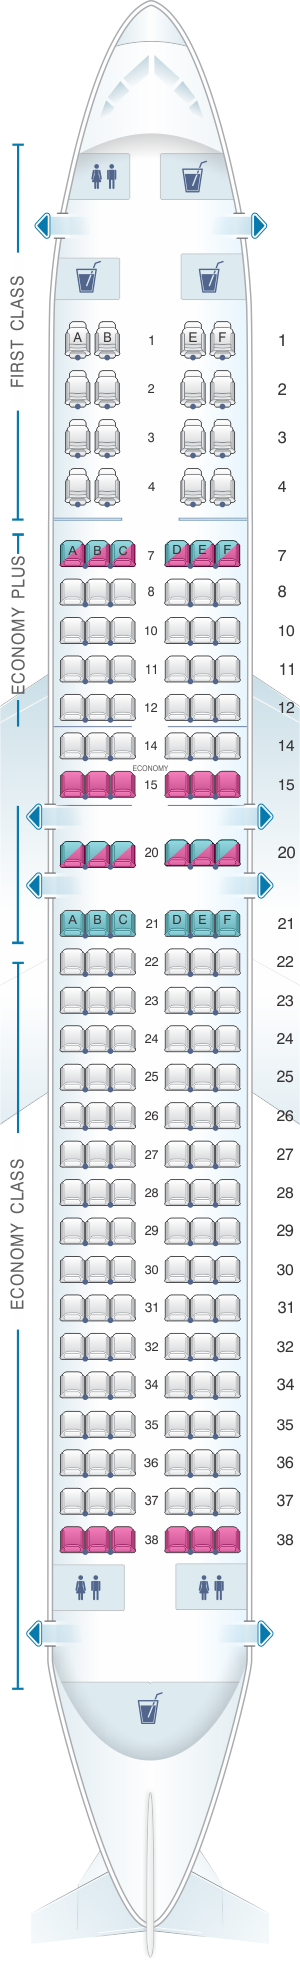 Seat map for United Airlines Boeing B737 800 - version 4